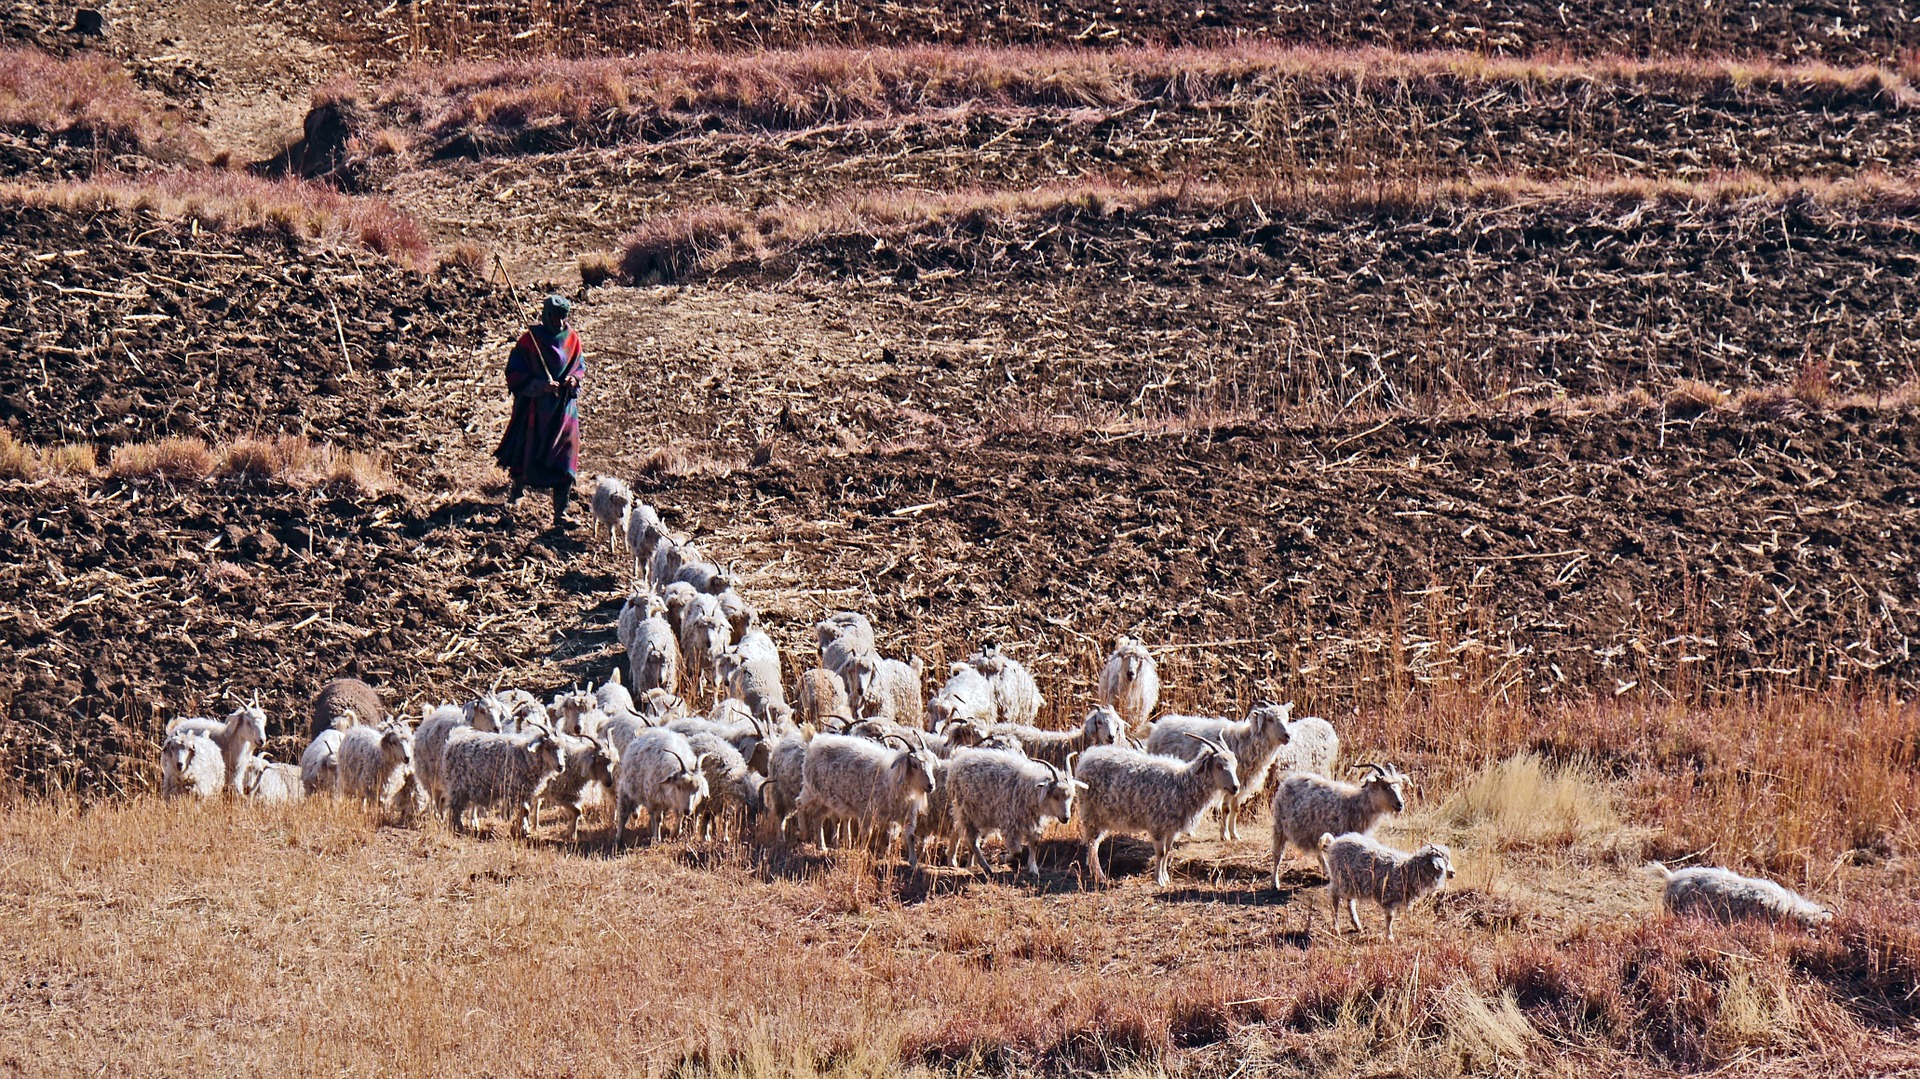 Lesotho goats, by H. Beisner, originally published in Pixabay CC0 Photo